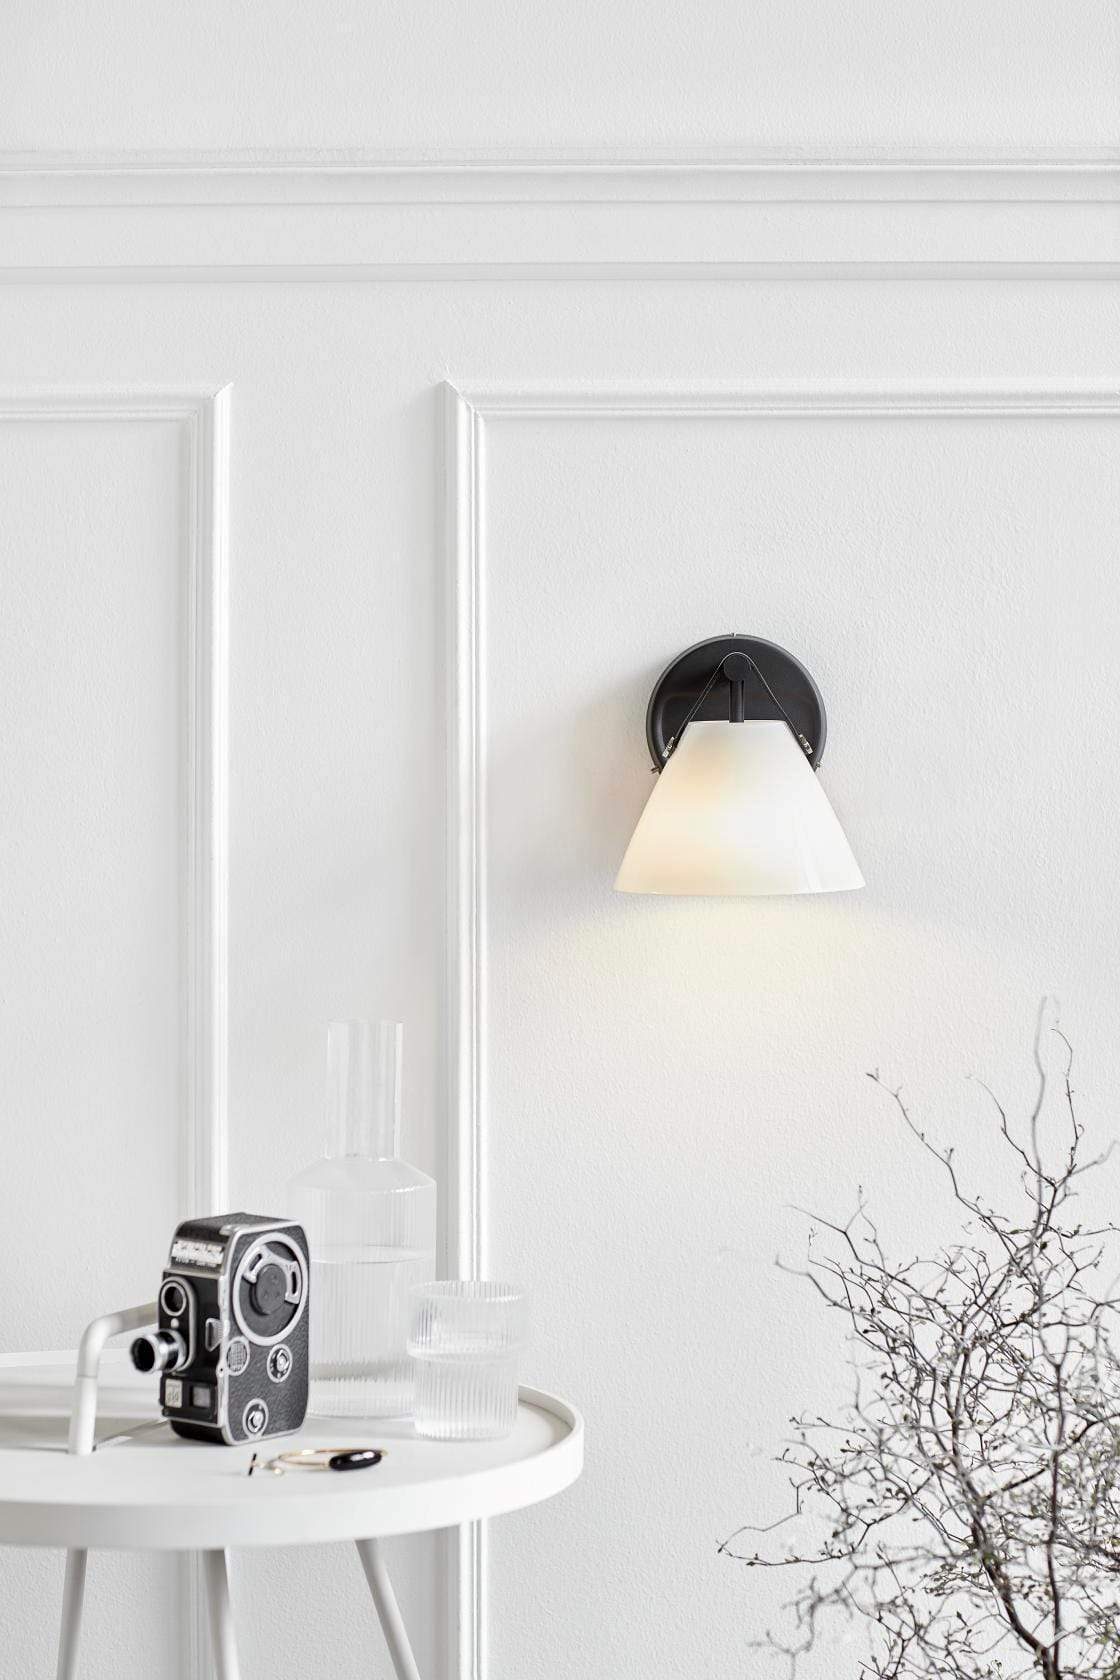 Interior Wall Light / Sconce Strap Glass Wall Light lighting shops lighting stores LED lights  lighting designer